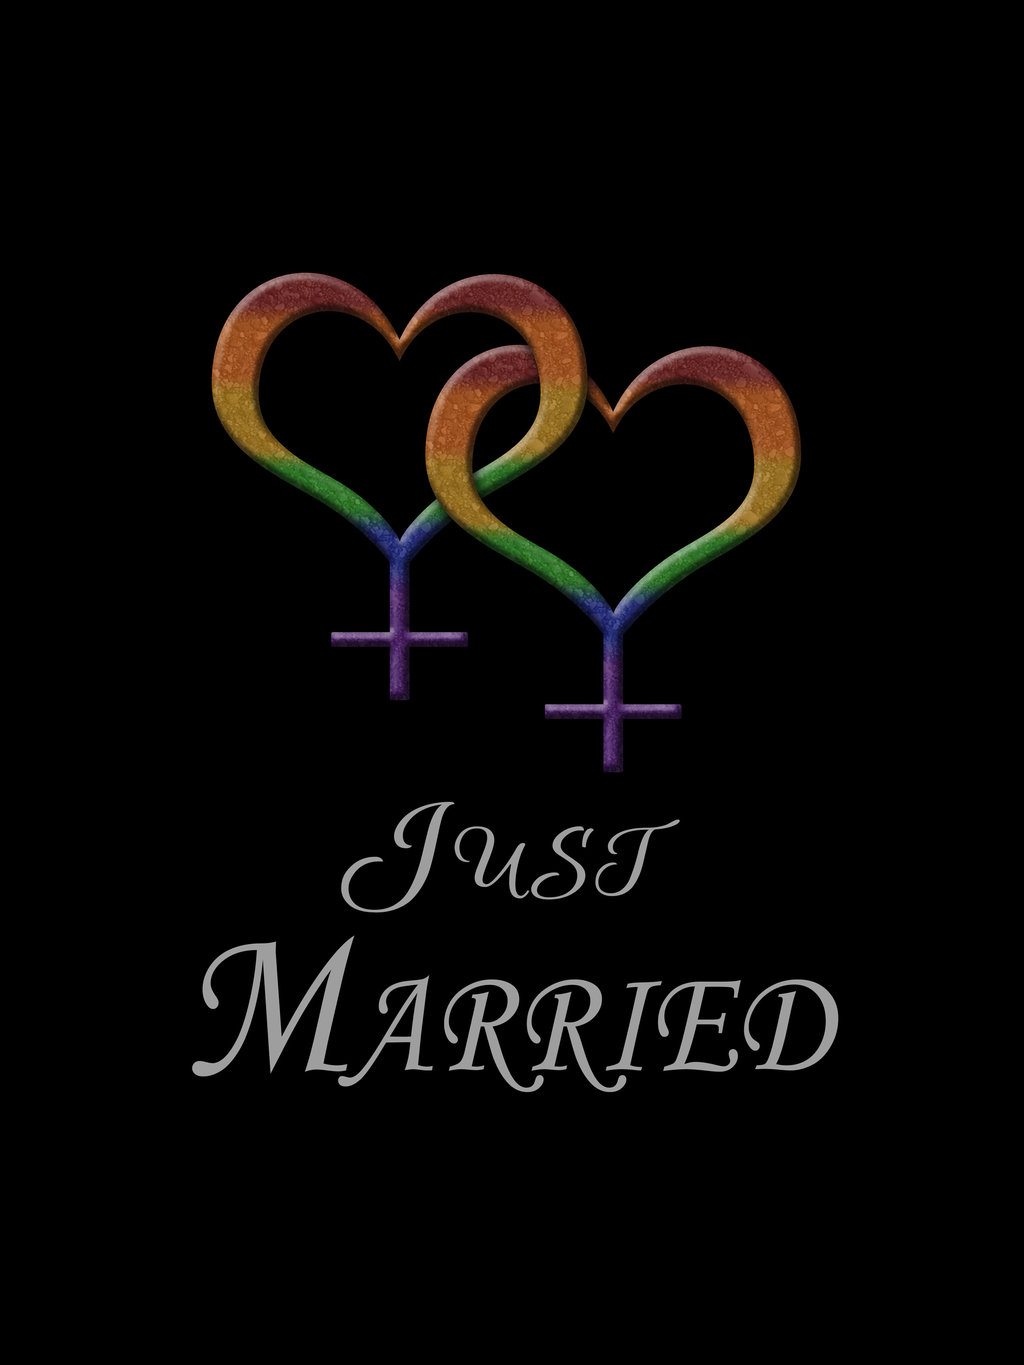 just_married_lesbian_pride_by_lovemystarfire-d6vx945